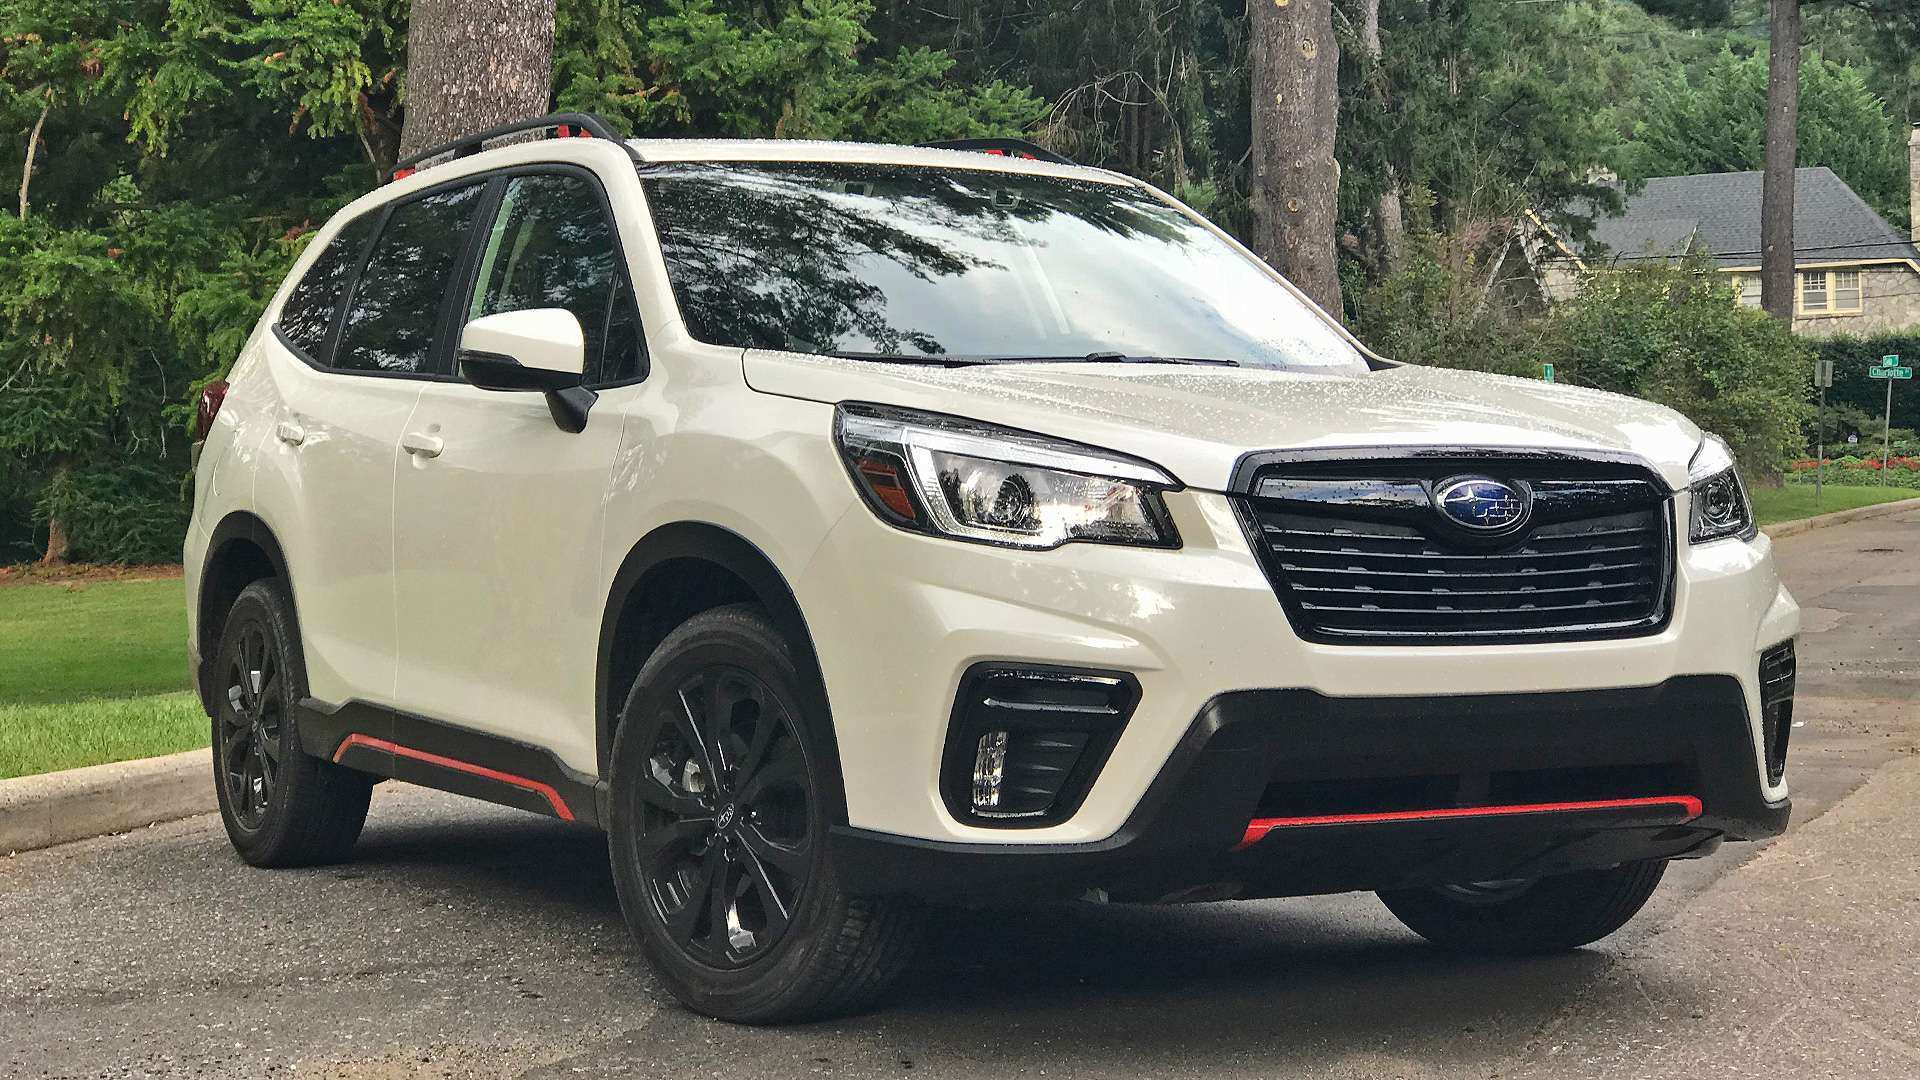 28 All New When Do Subaru 2019 Come Out Release with When Do Subaru 2019 Come Out